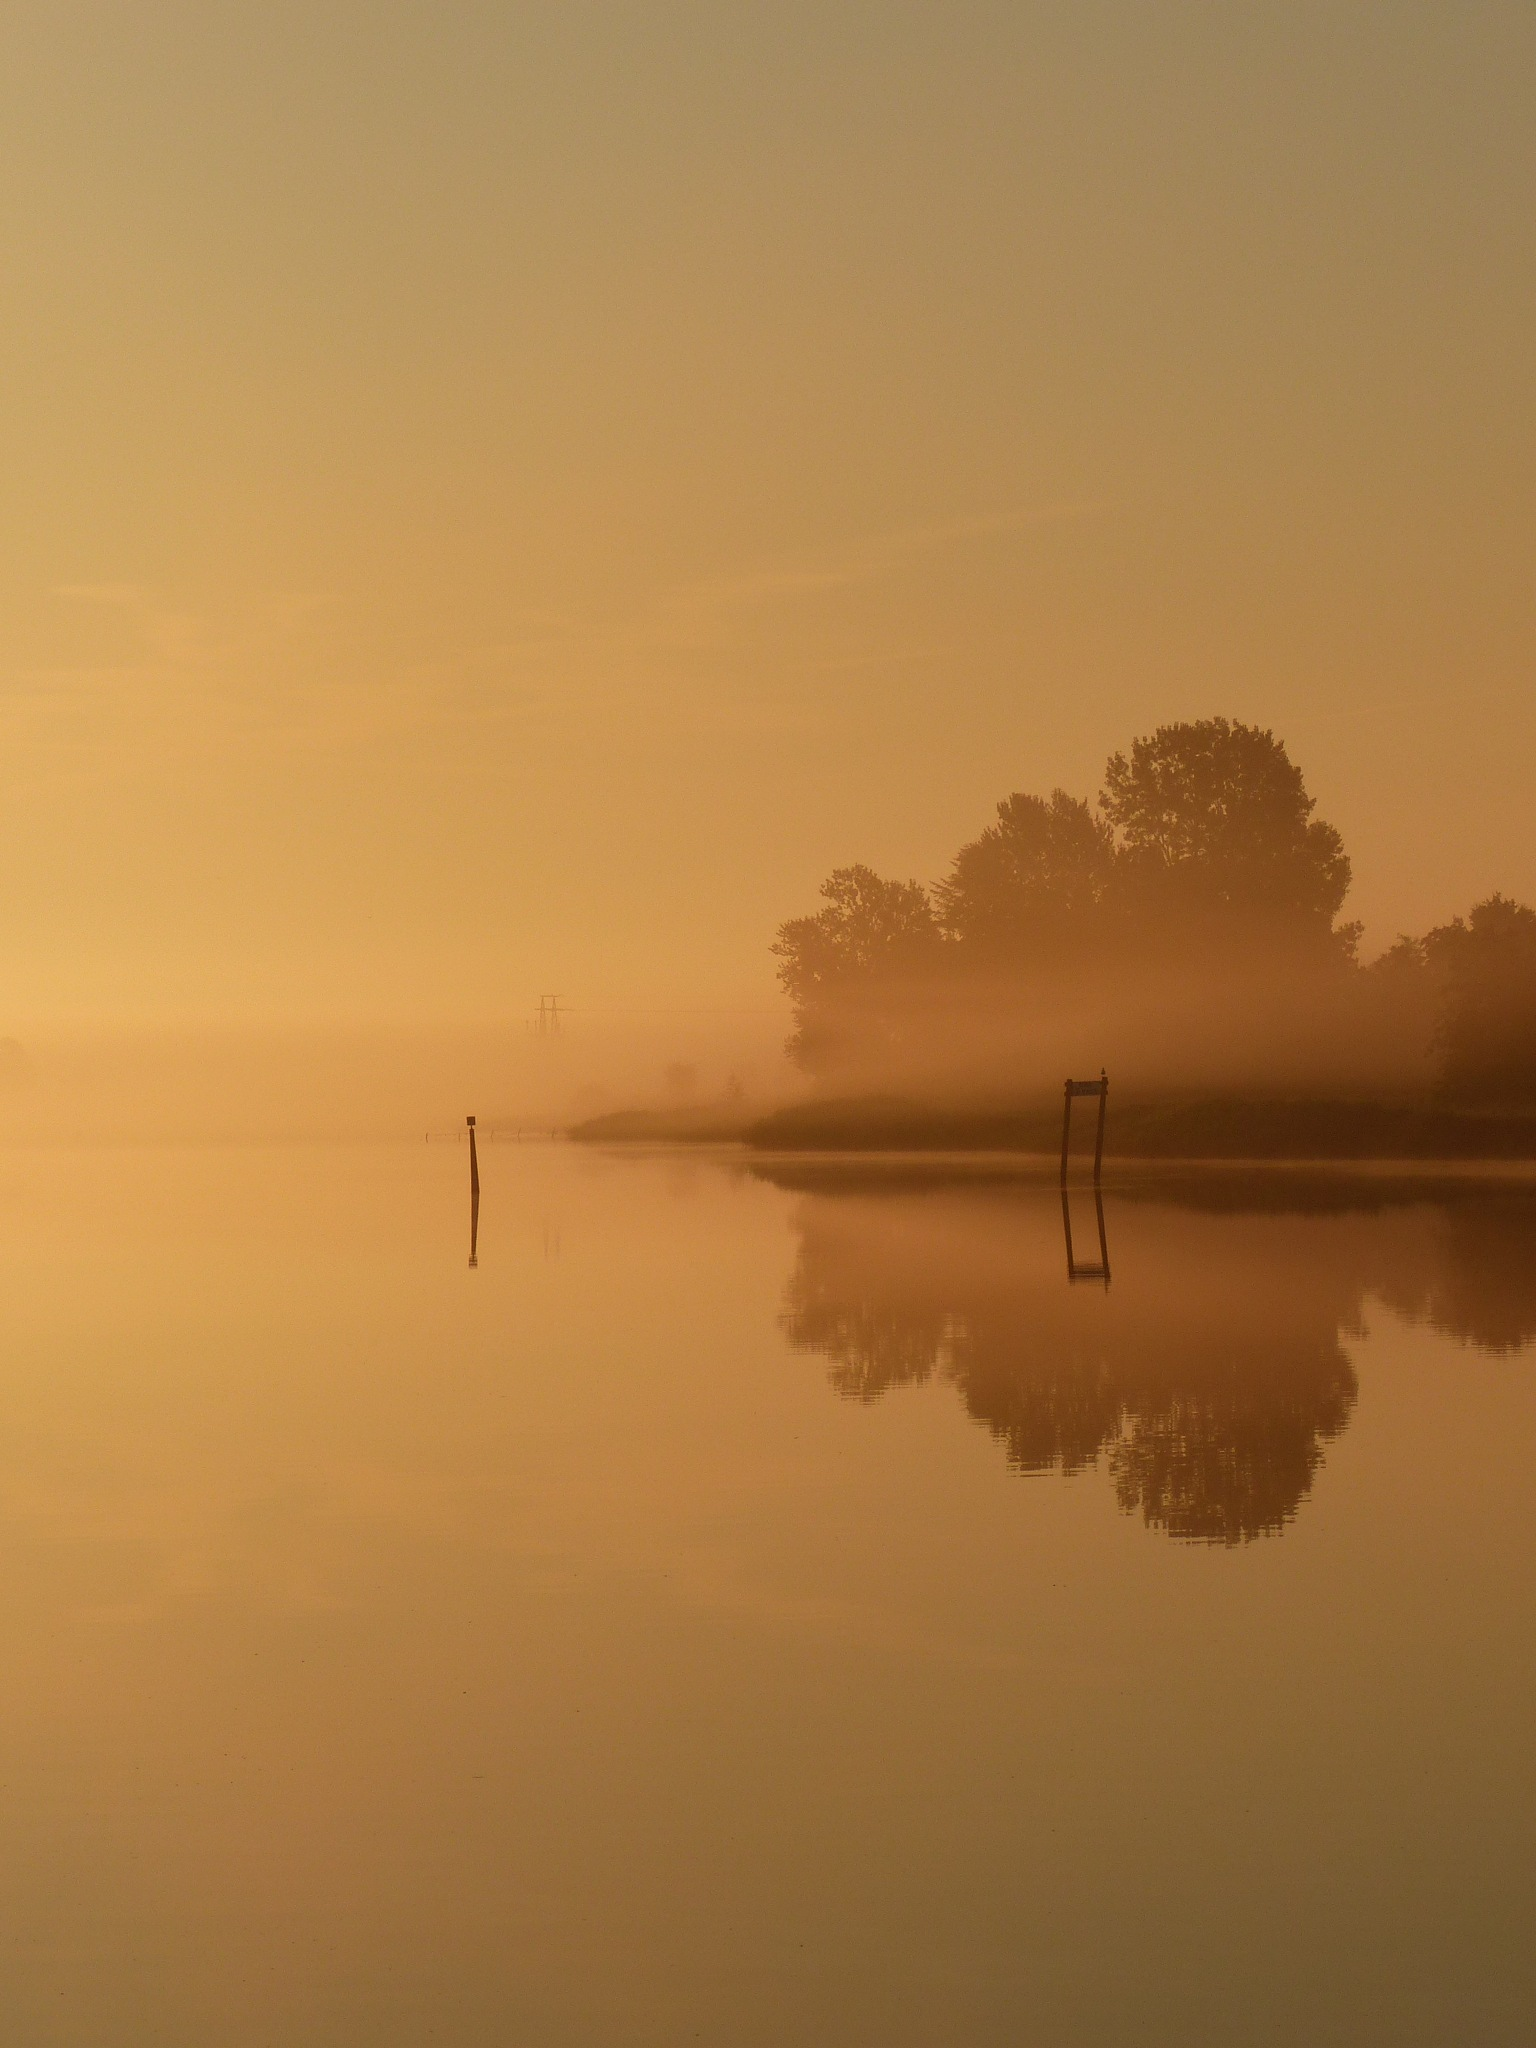 Sunrise on a calm day by Lars M.